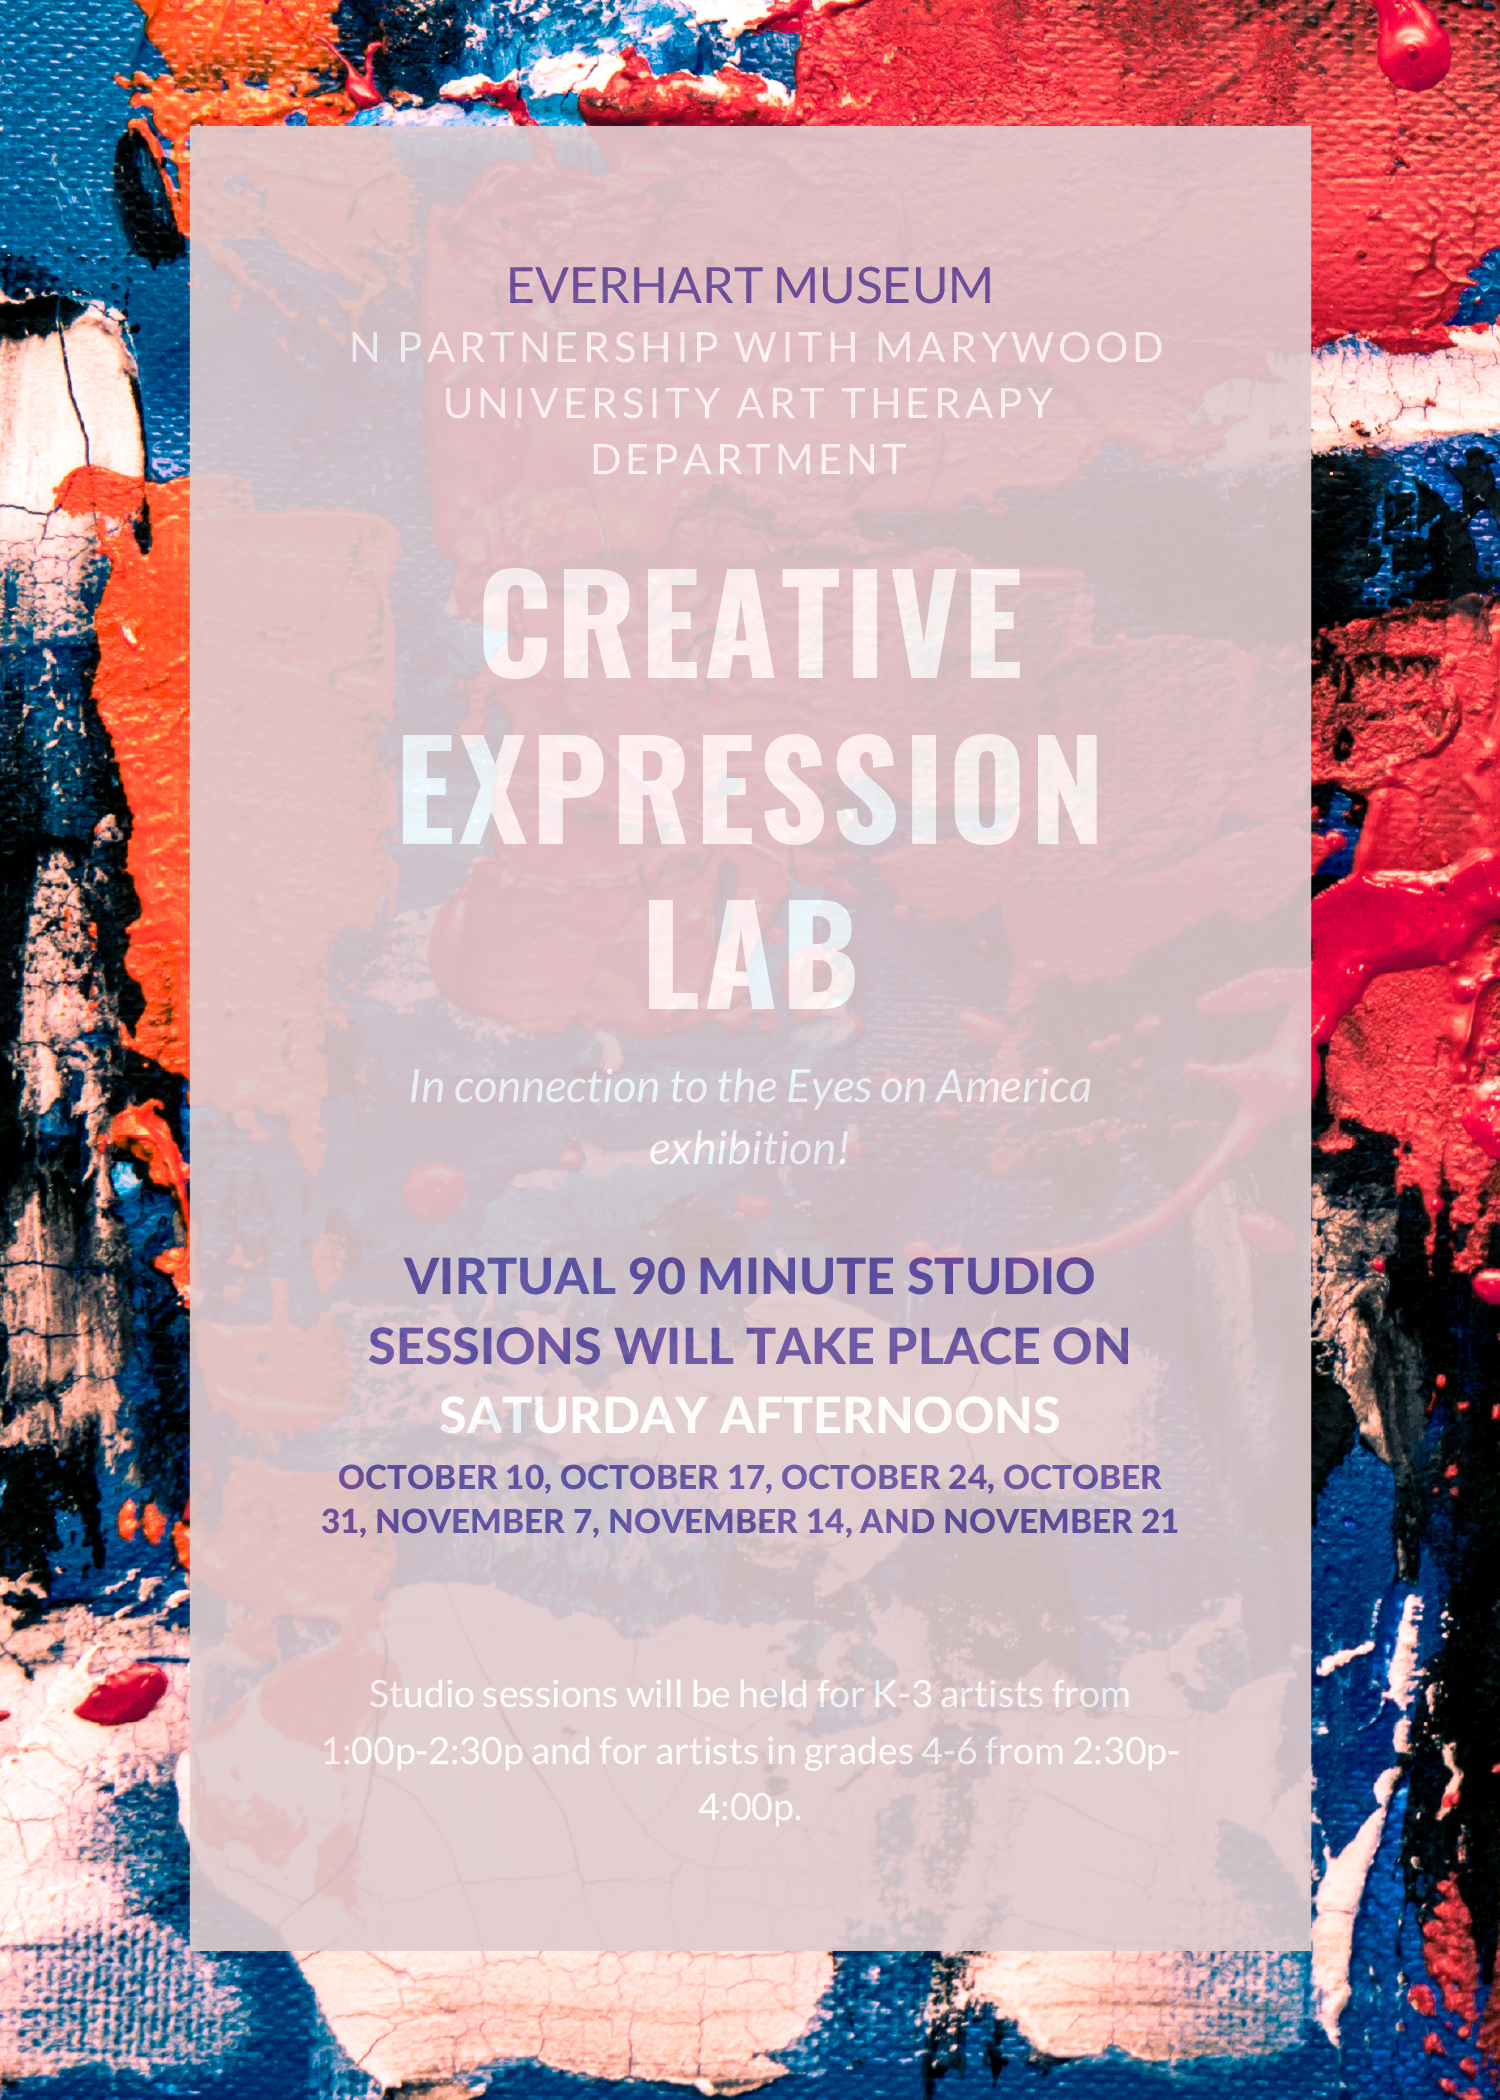 Creative Expression Lab Program at Everhart